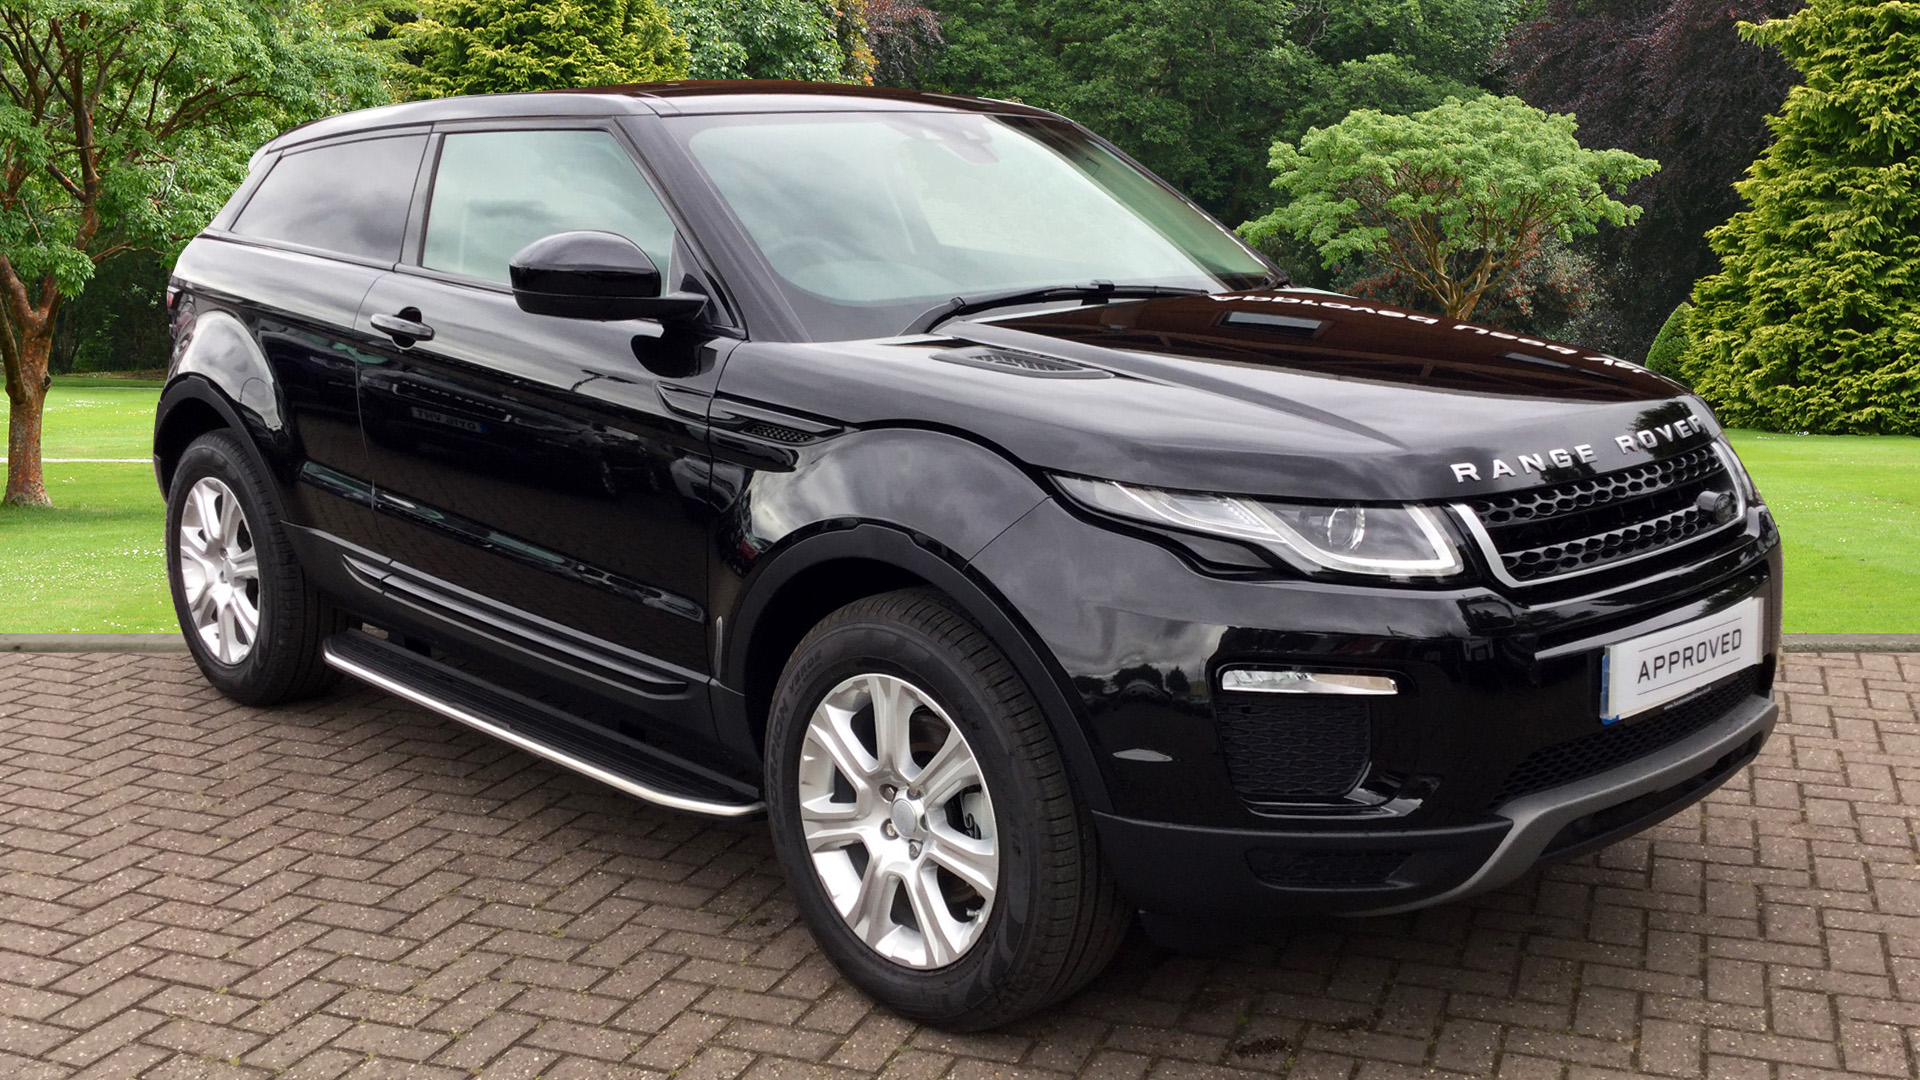 Used Range Rover Evoque for sale in Derby